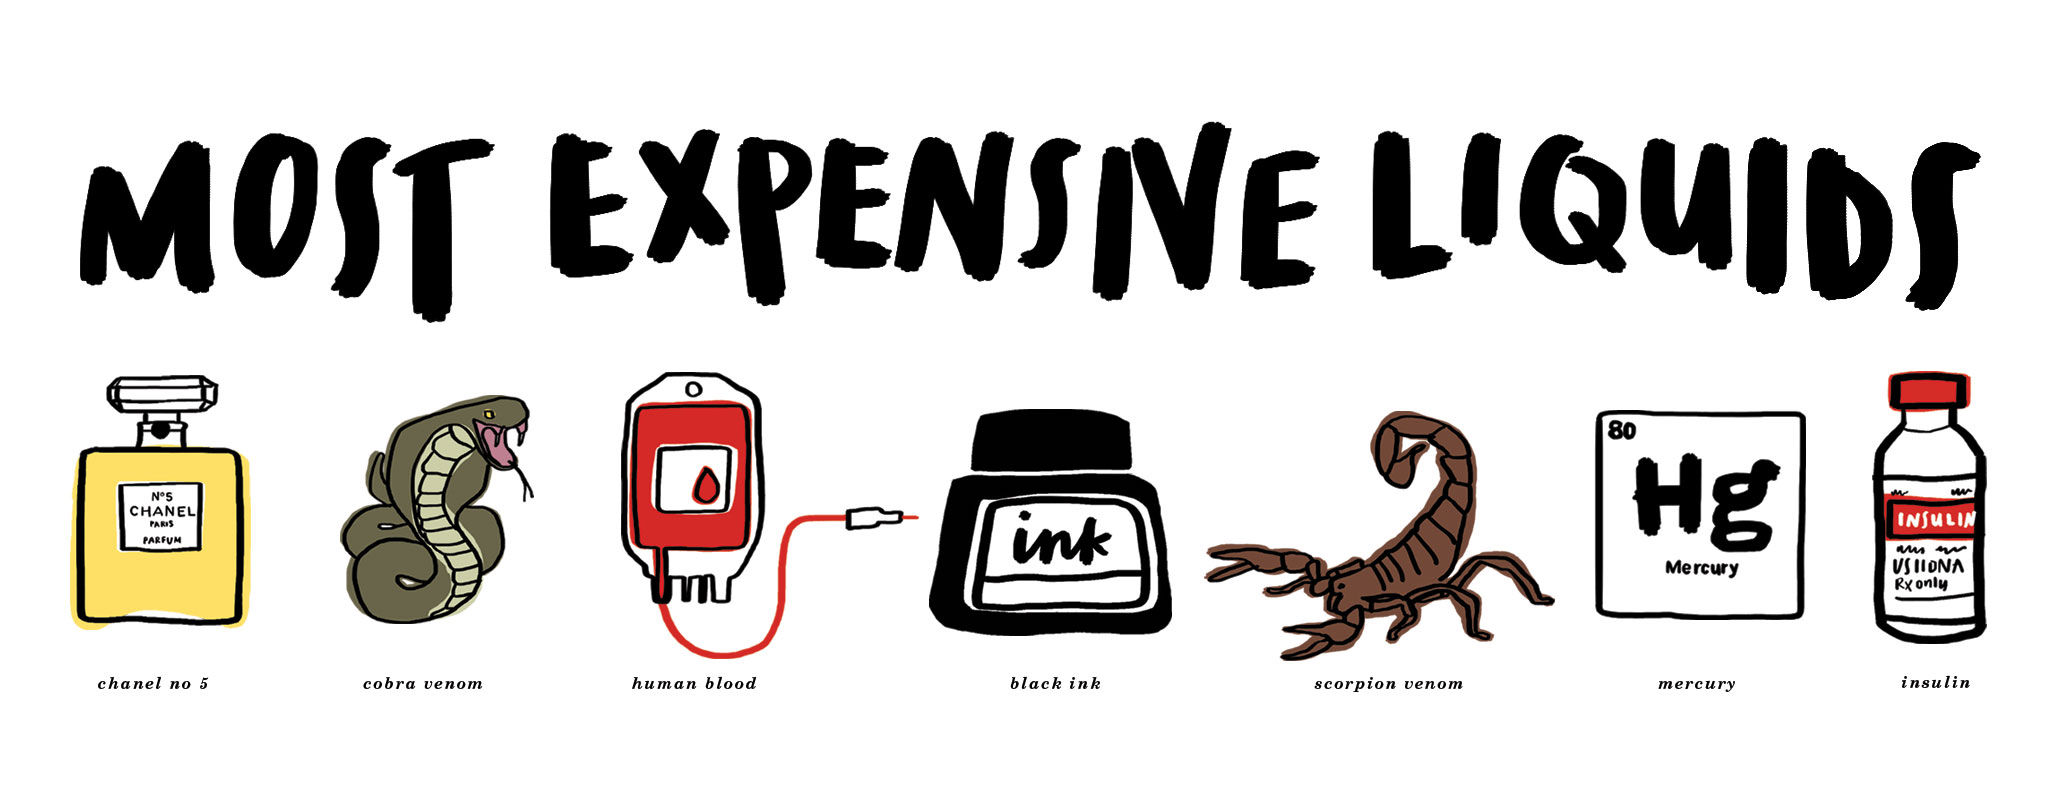 Shocking clipart expensive May The  Liquids 10